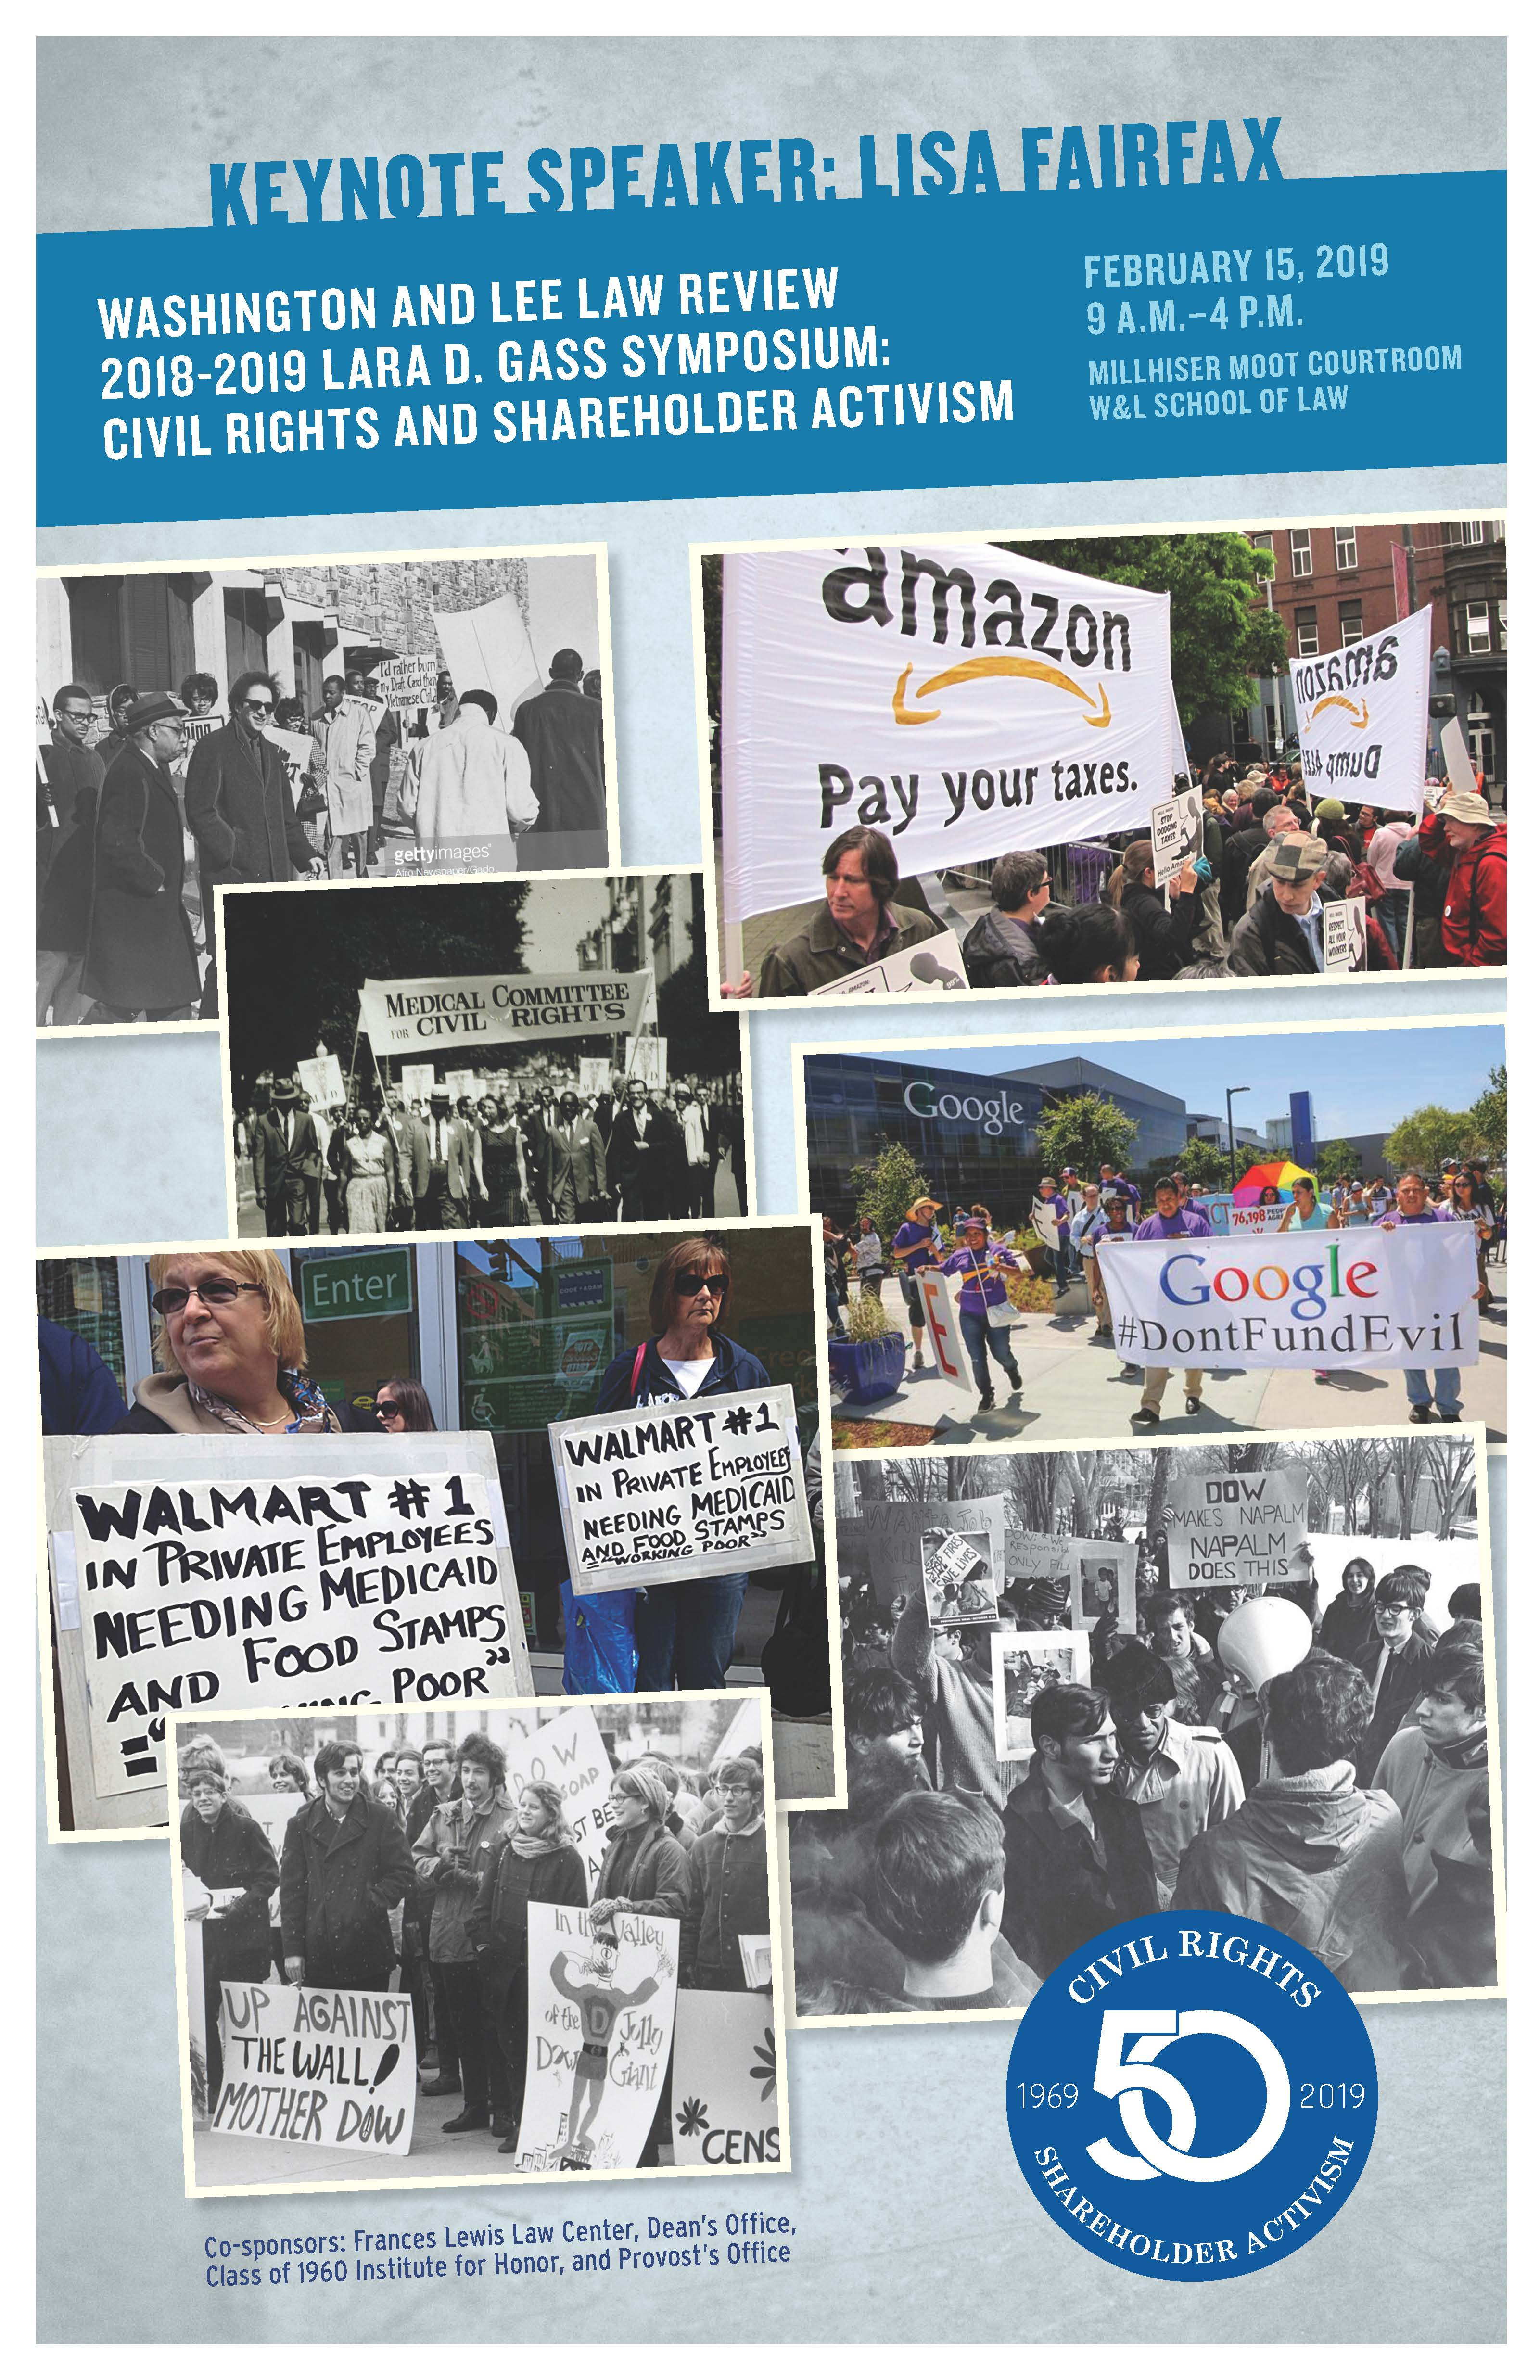 Civil Rights and Shareholder Activism